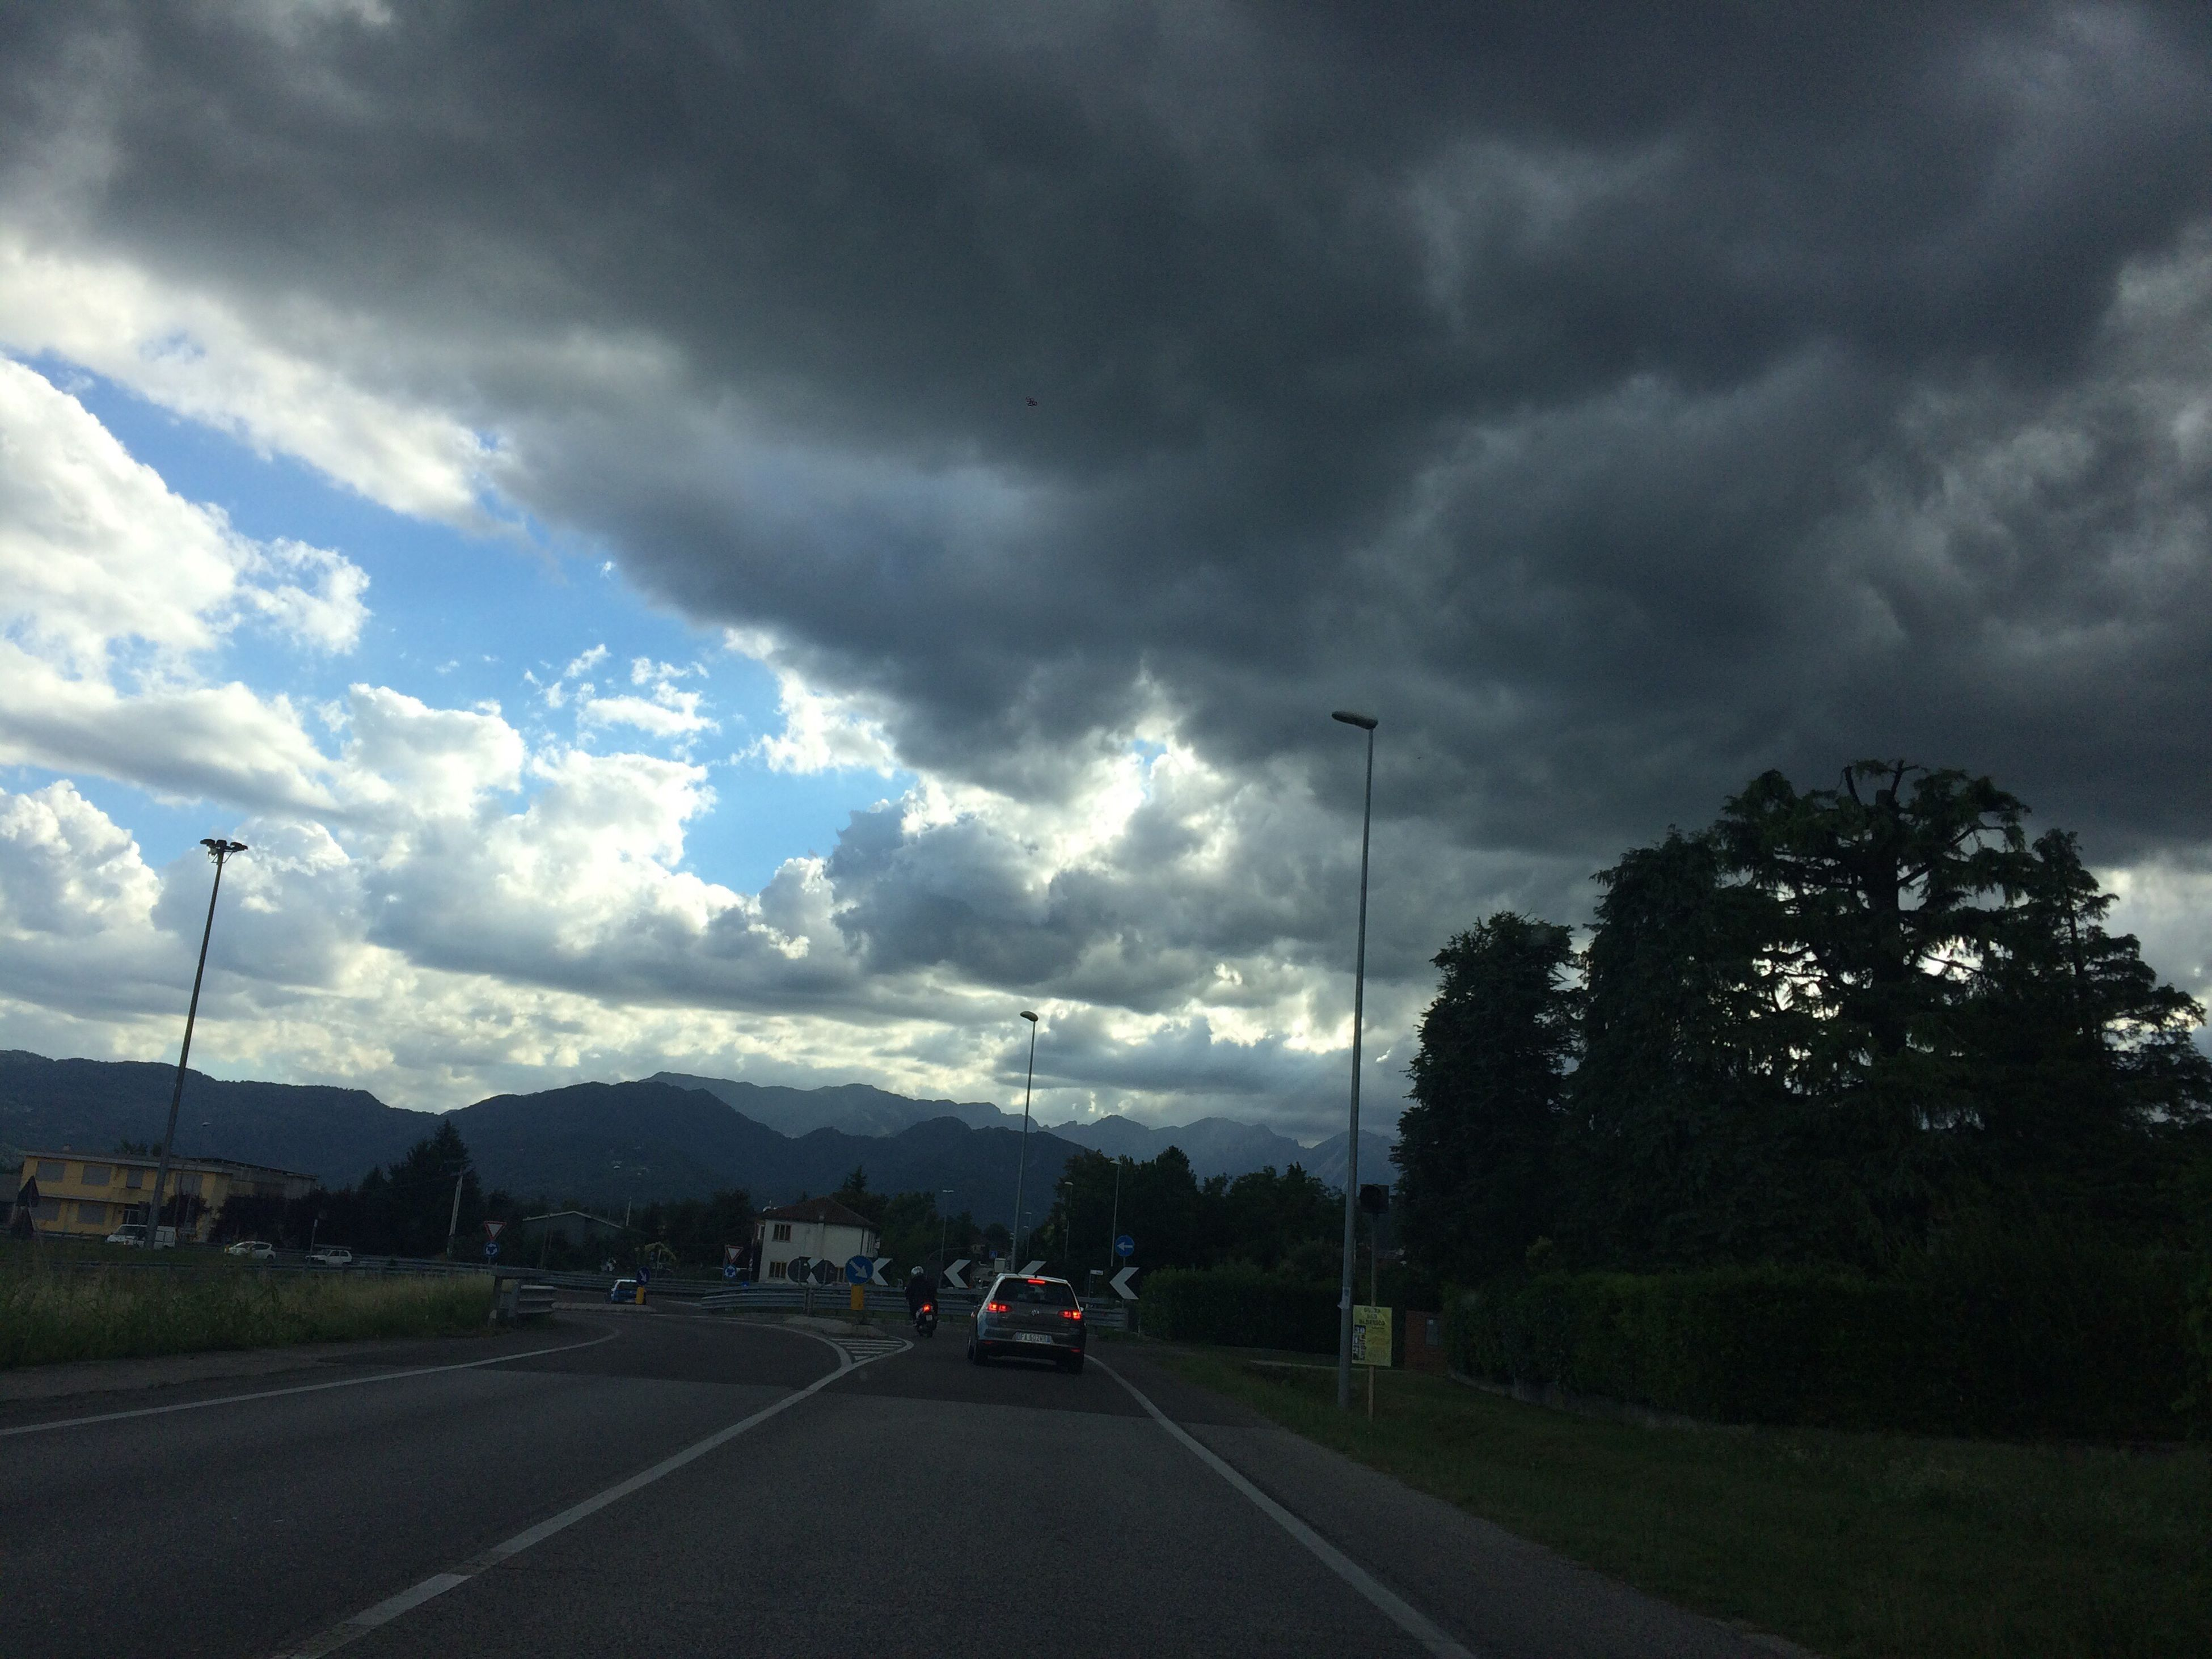 car, road, cloud - sky, transportation, sky, land vehicle, dramatic sky, storm cloud, street light, tree, outdoors, the way forward, day, no people, mountain, nature, thunderstorm, beauty in nature